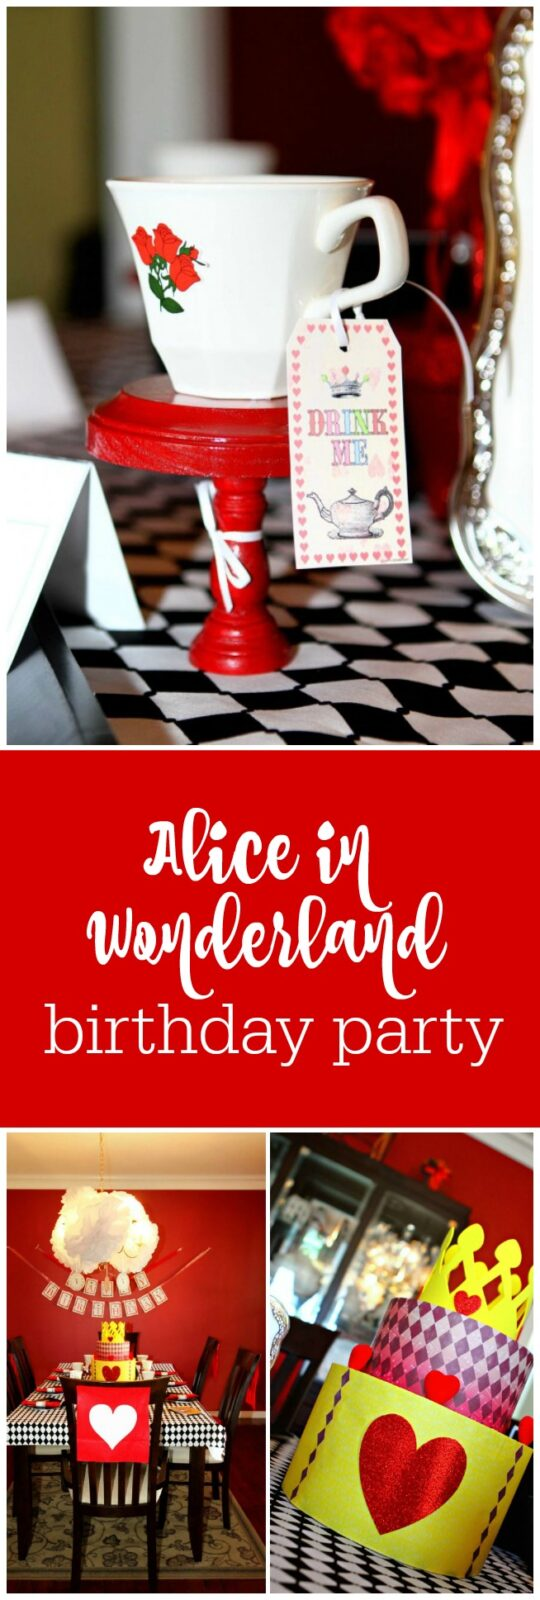 Alice in Wonderland birthday 5th party for twins by Home Confetti featured on The Party Teacher